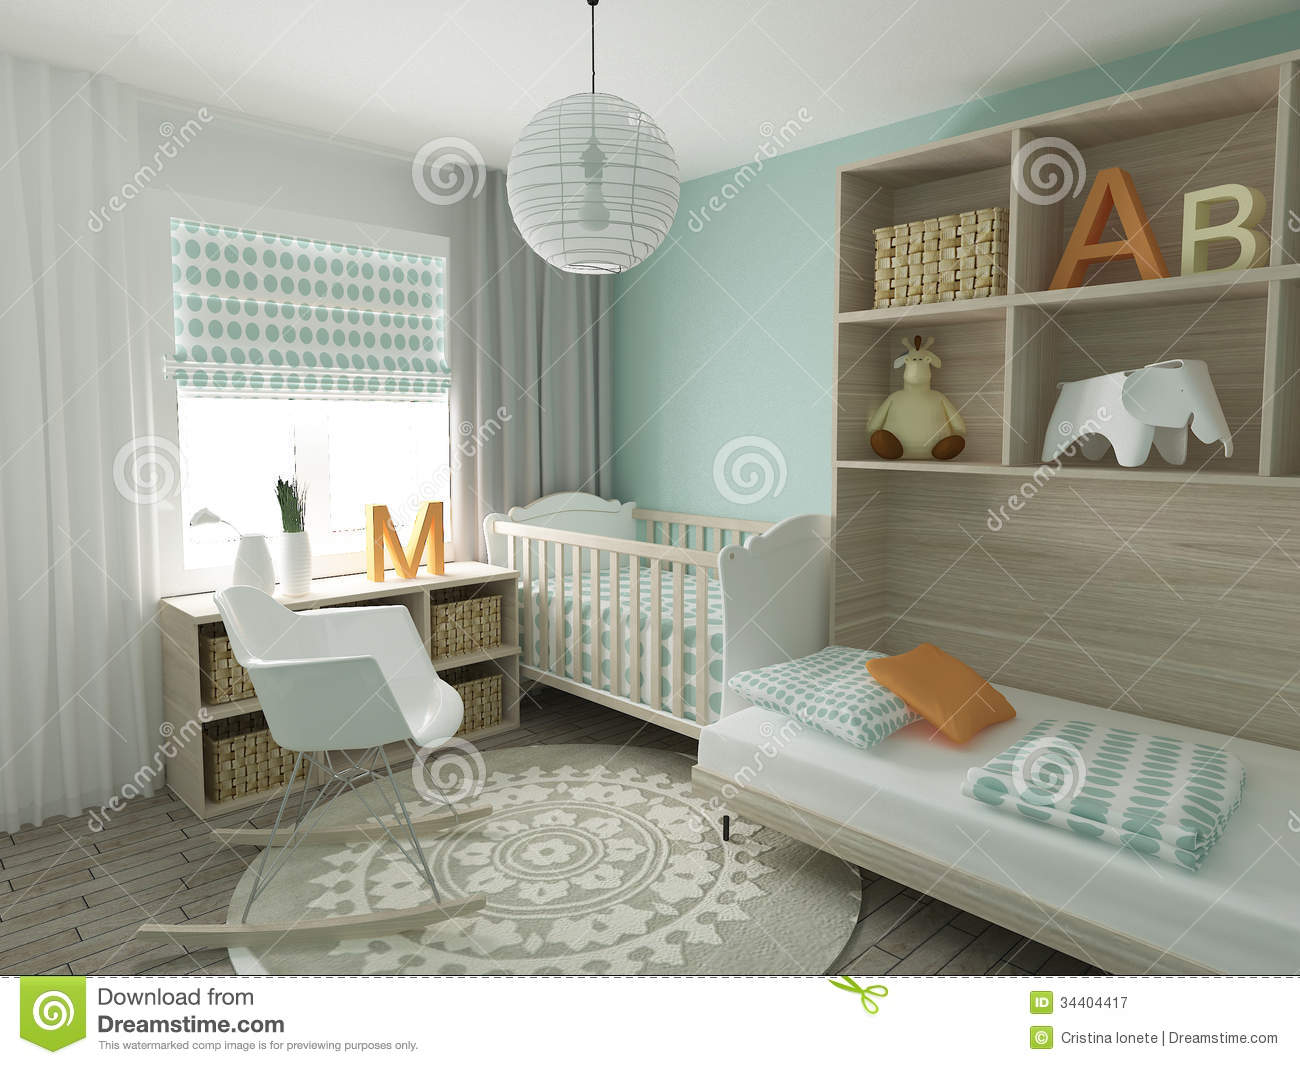 Nursery interior royalty free stock photography image 34404417 - Deco babybed ...